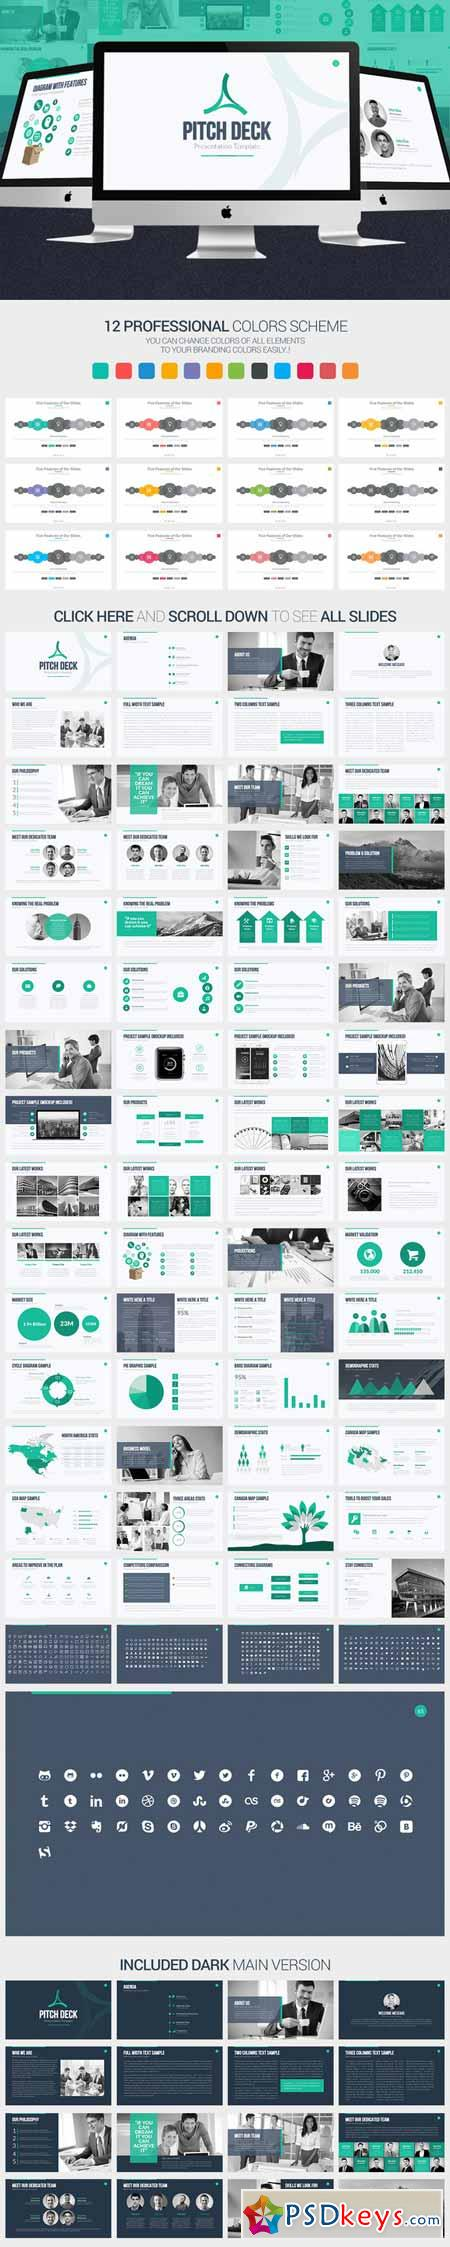 pitch deck powerpoint template 375469 free download photoshop vector stock image via torrent. Black Bedroom Furniture Sets. Home Design Ideas